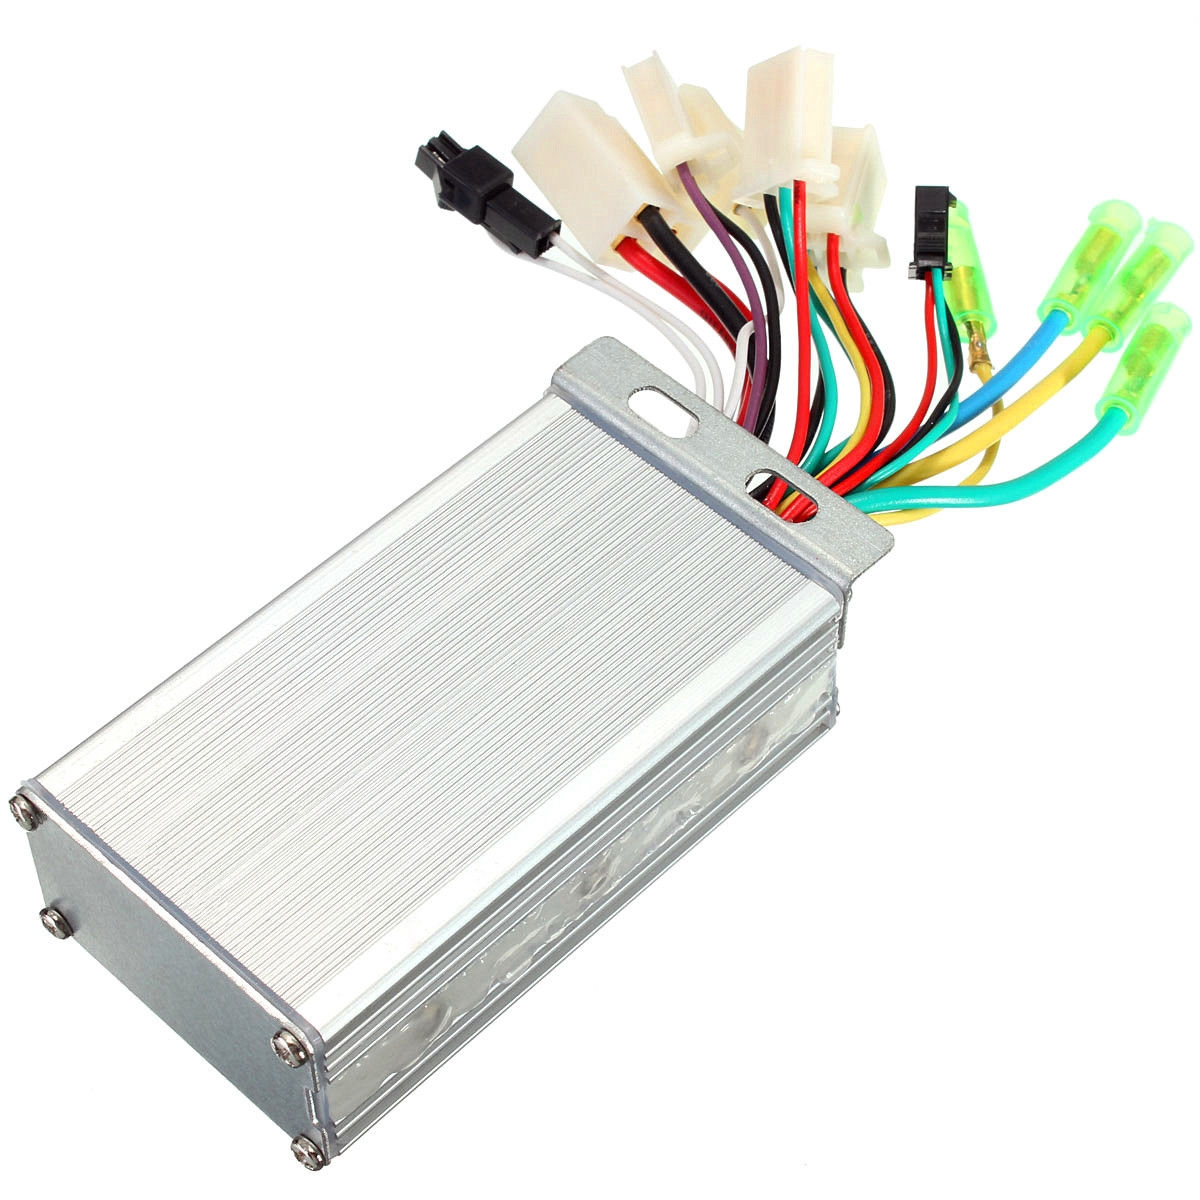 Generic 1PC 24V 250W Electric Speed Controller Box for E-bike